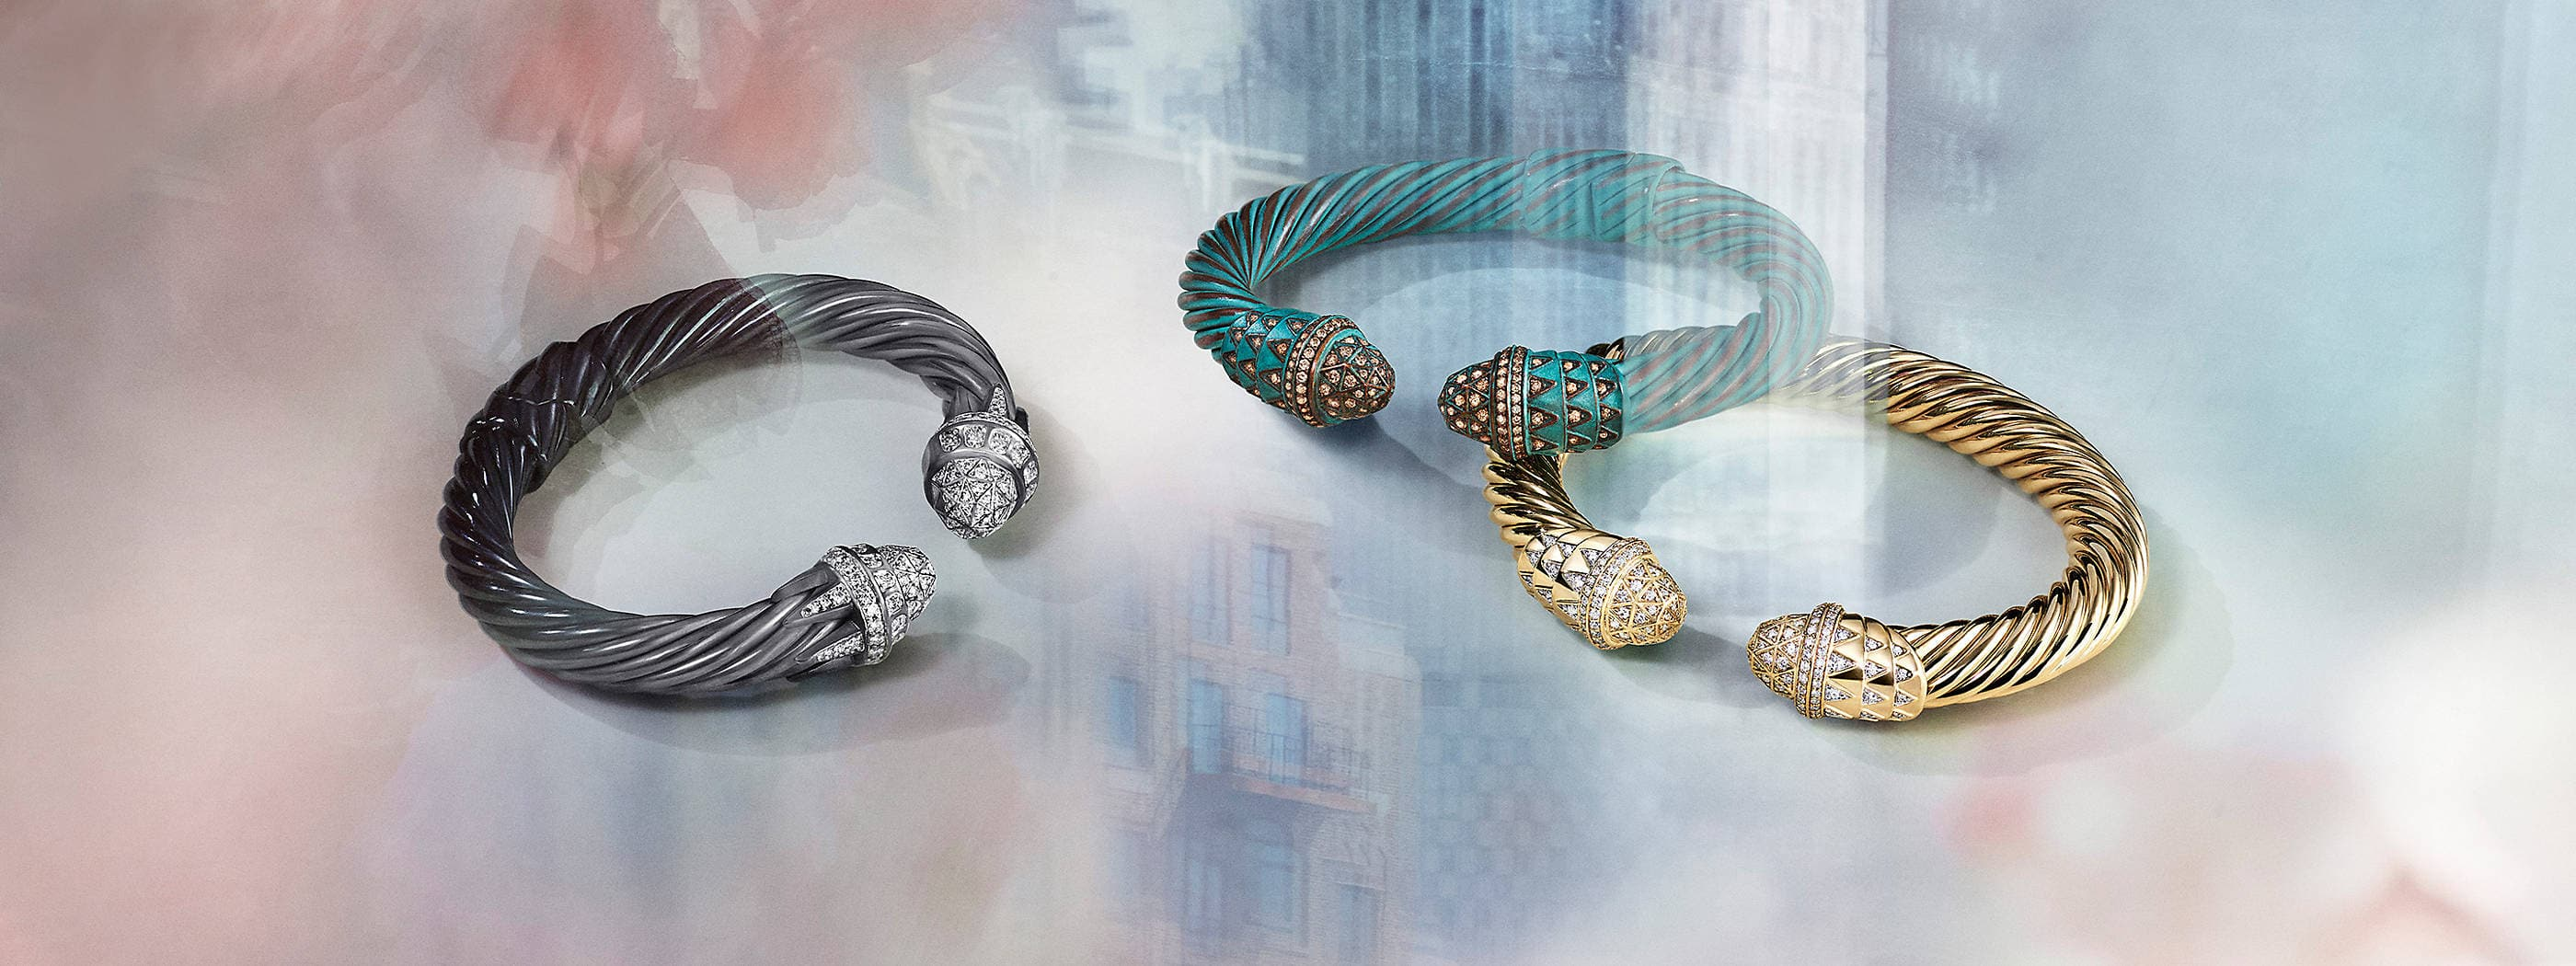 A color photo shows three David Yurman women's Cable bracelets scattered on a white background with soft-focus flowers, city buildings and reflections of light. Two of the bracelets feature Art Deco-inspired motifs in white diamonds at the ends and are crafted from darkened sterling silver or 18K yellow gold. The other bracelet is crafted from green-hued copper with cognac diamonds set in a pattern inspired by the Statue of Liberty.